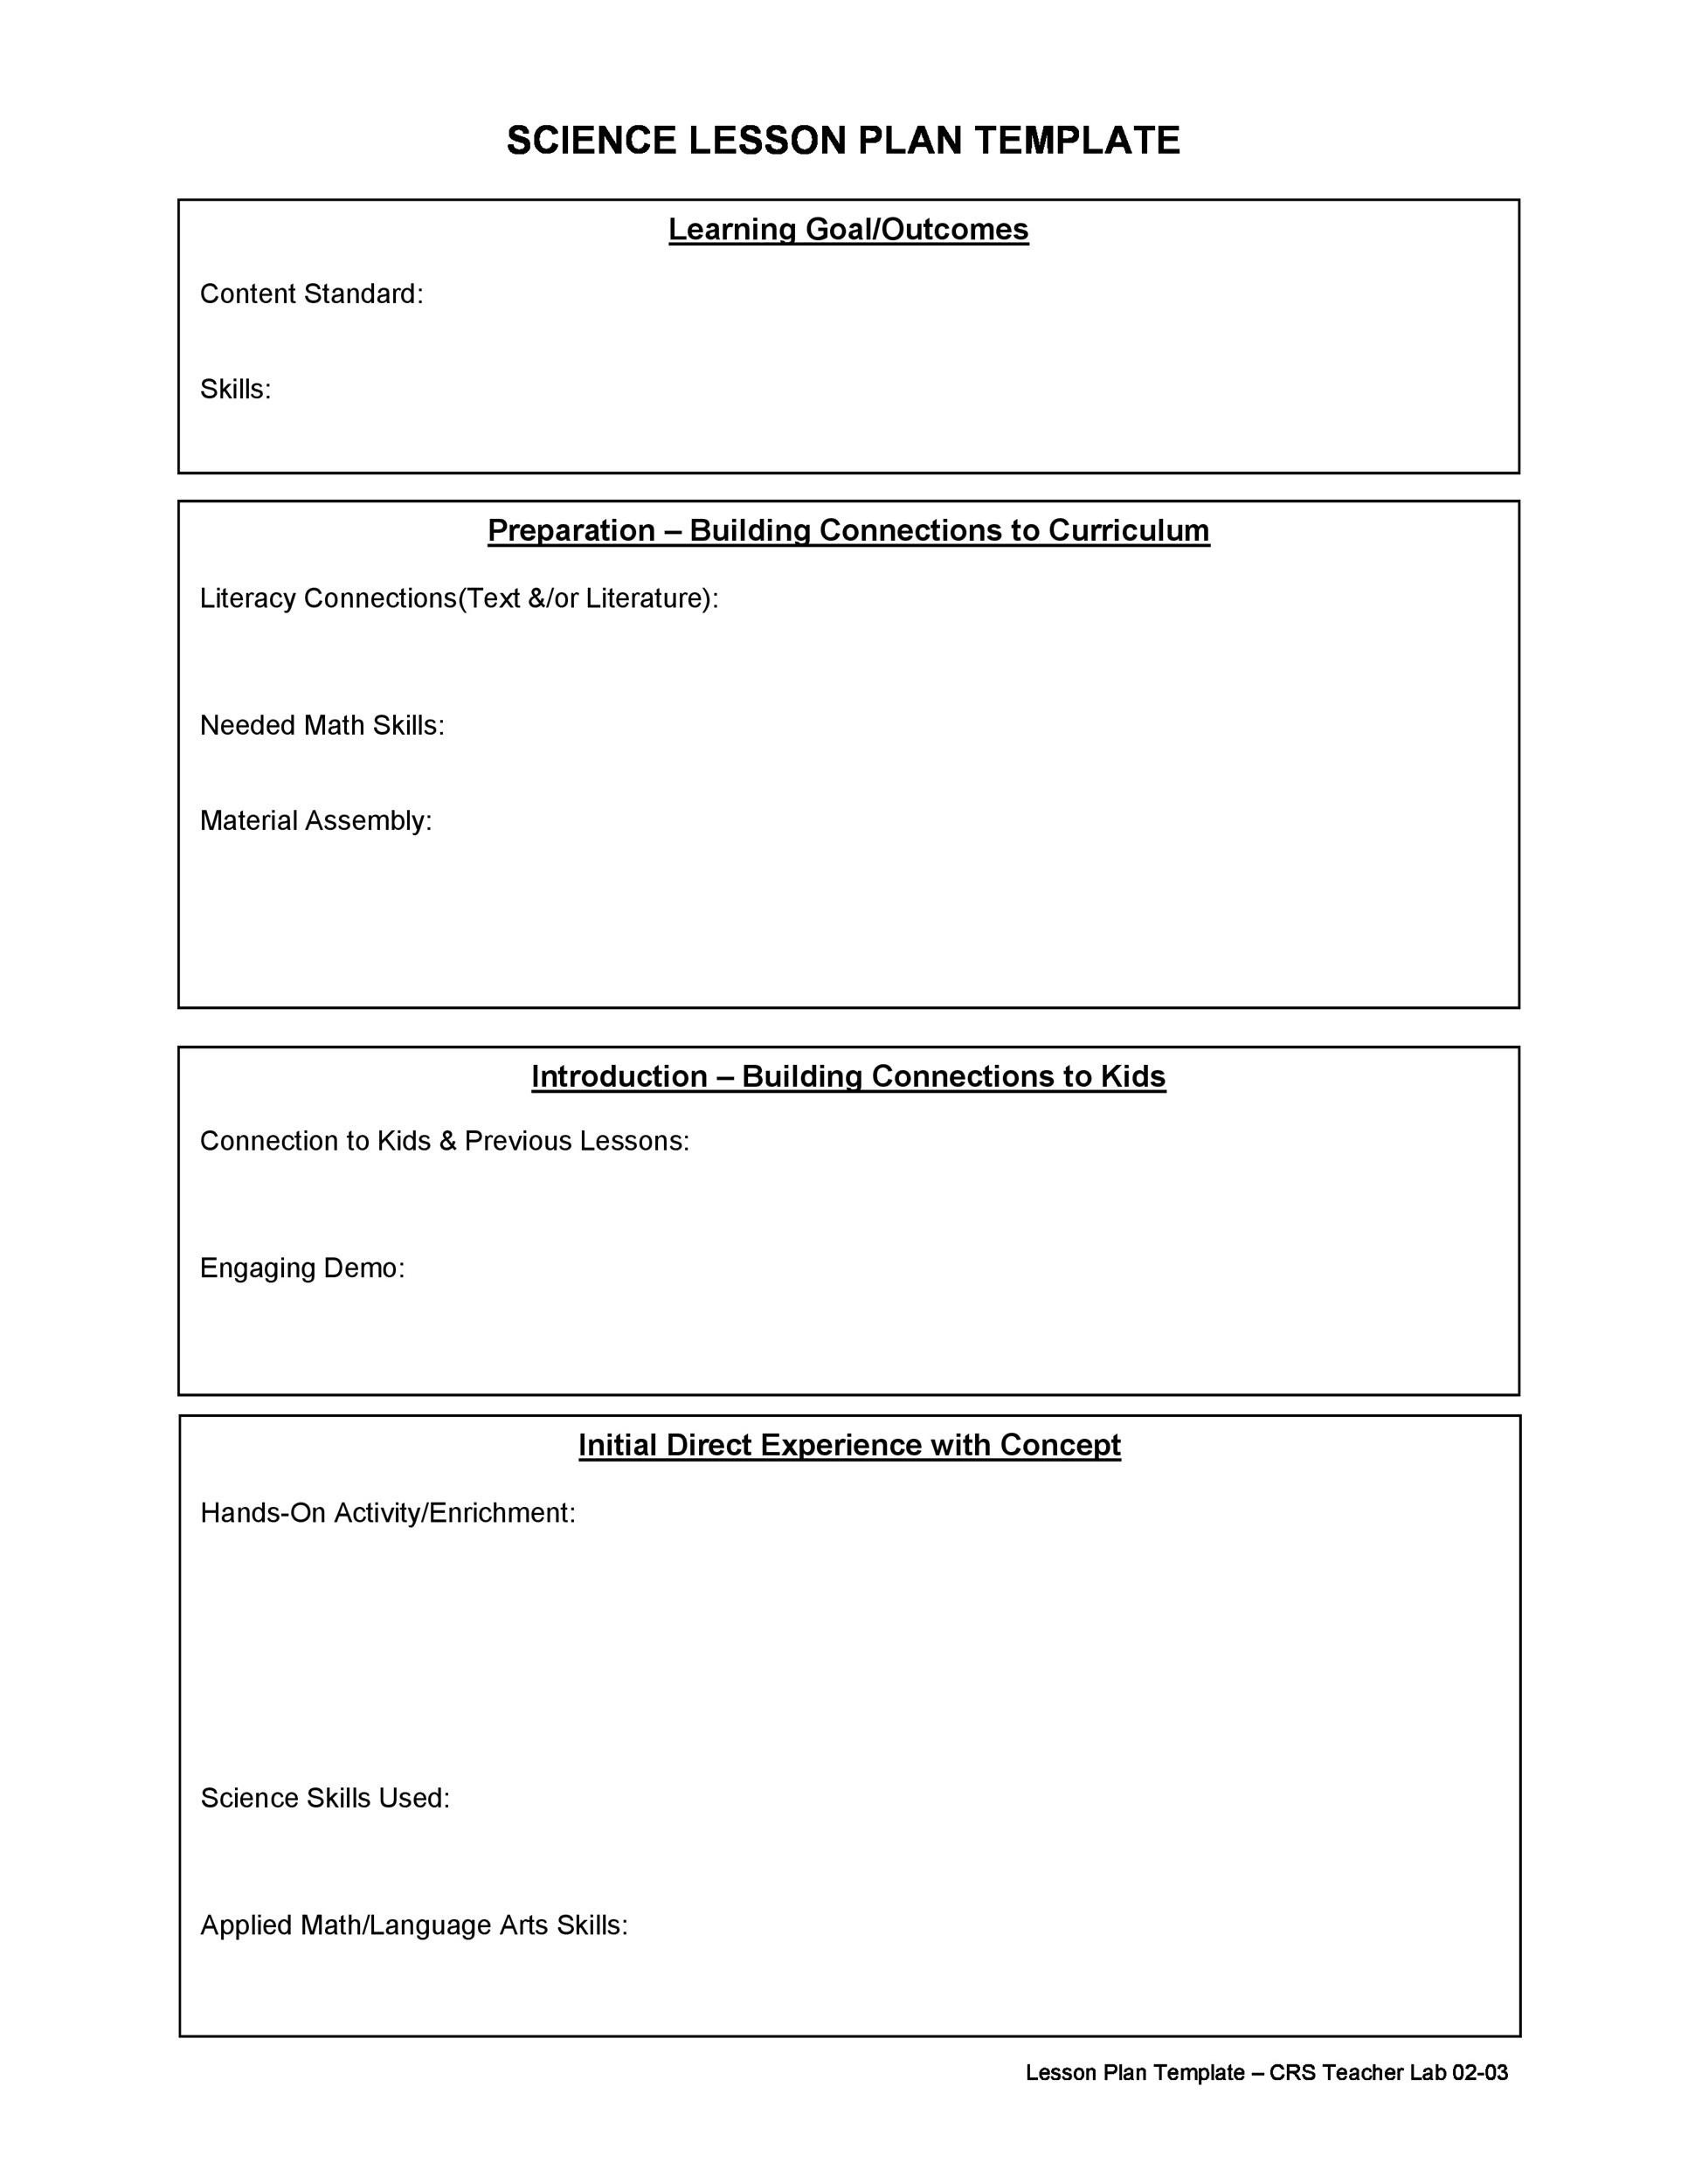 44 free lesson plan templates common core preschool weekly for Outline of a lesson plan template